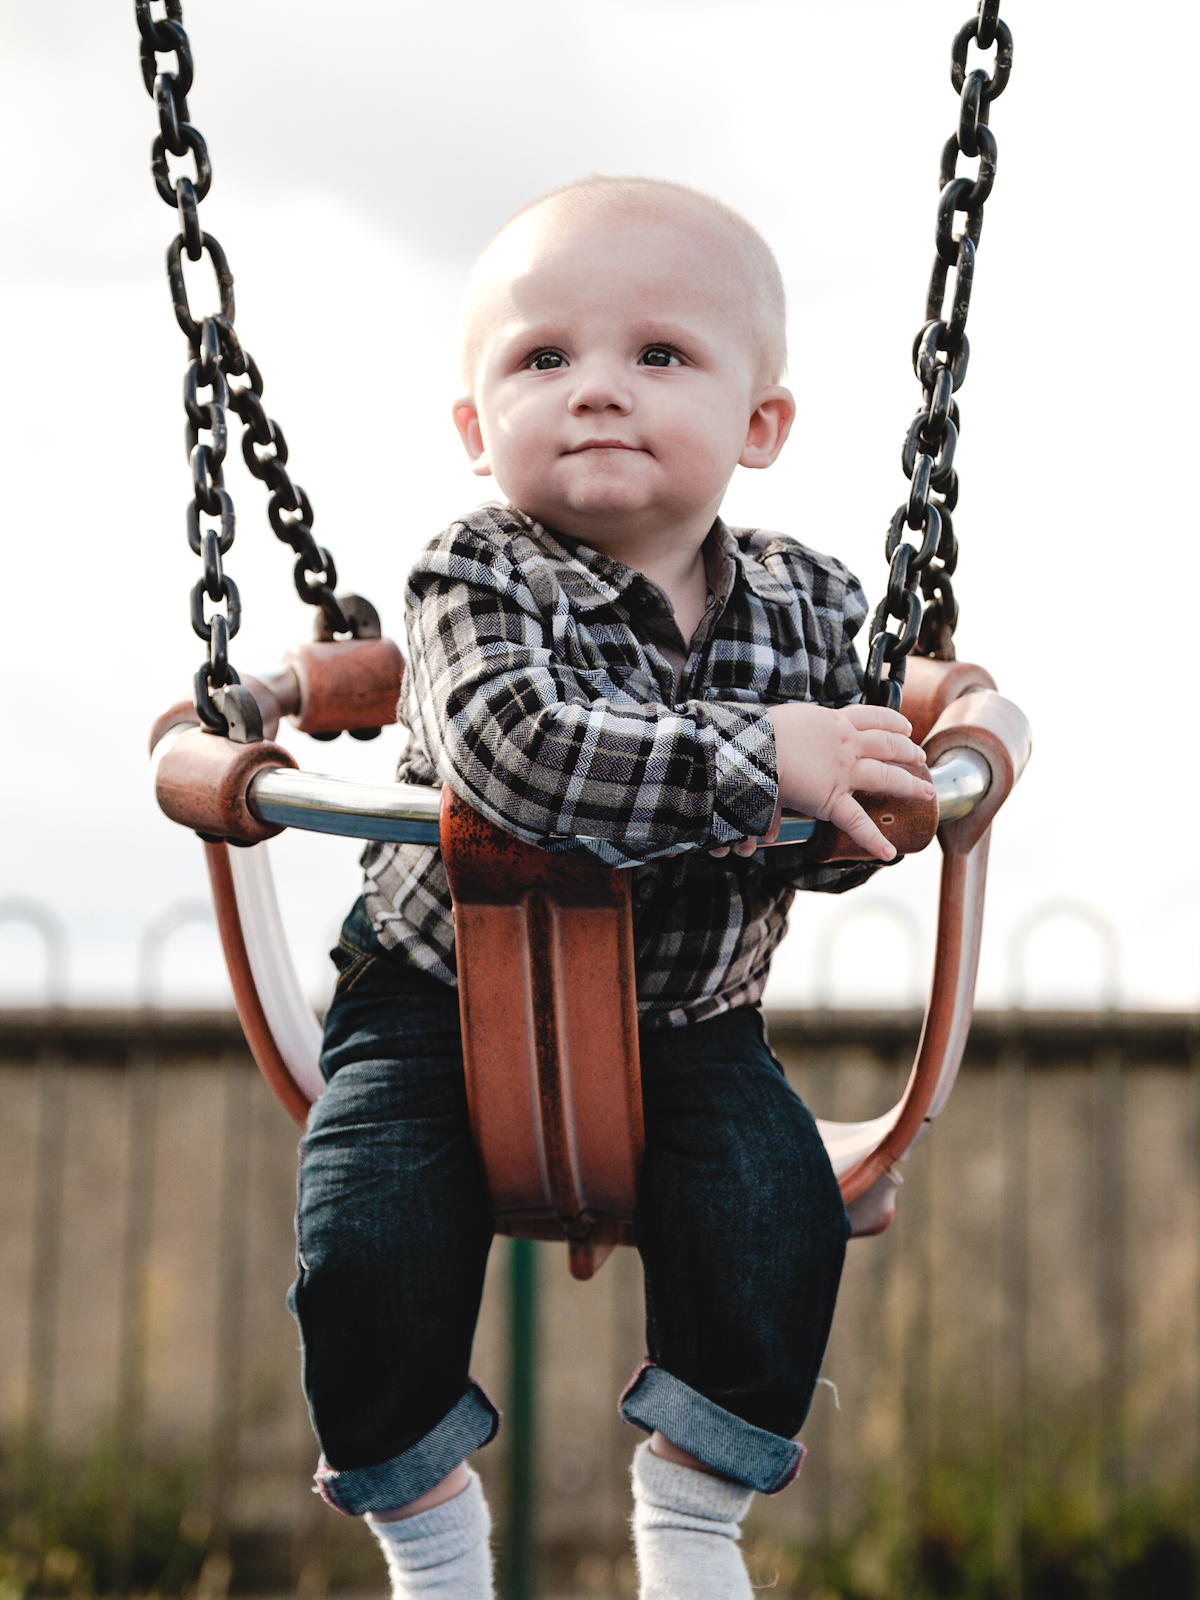 A young child wearing a shirt and jeans is sitting in a swing